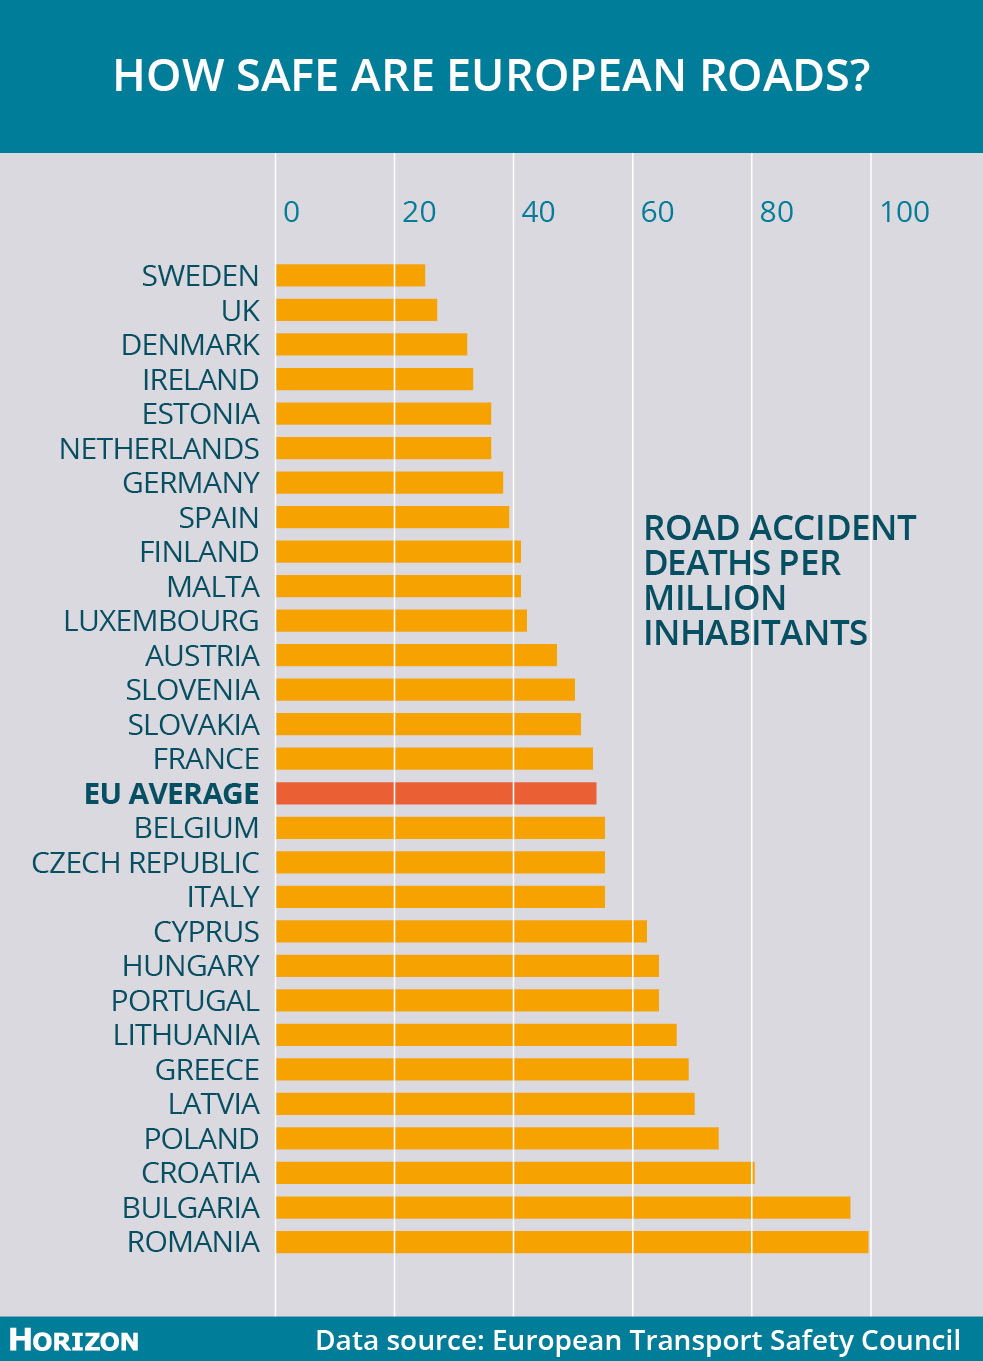 Sweden has the safest roads in the EU, with 25 deaths per million inhabitants, whereas Romania has almost four times as many with 99. Image credit - Horizon